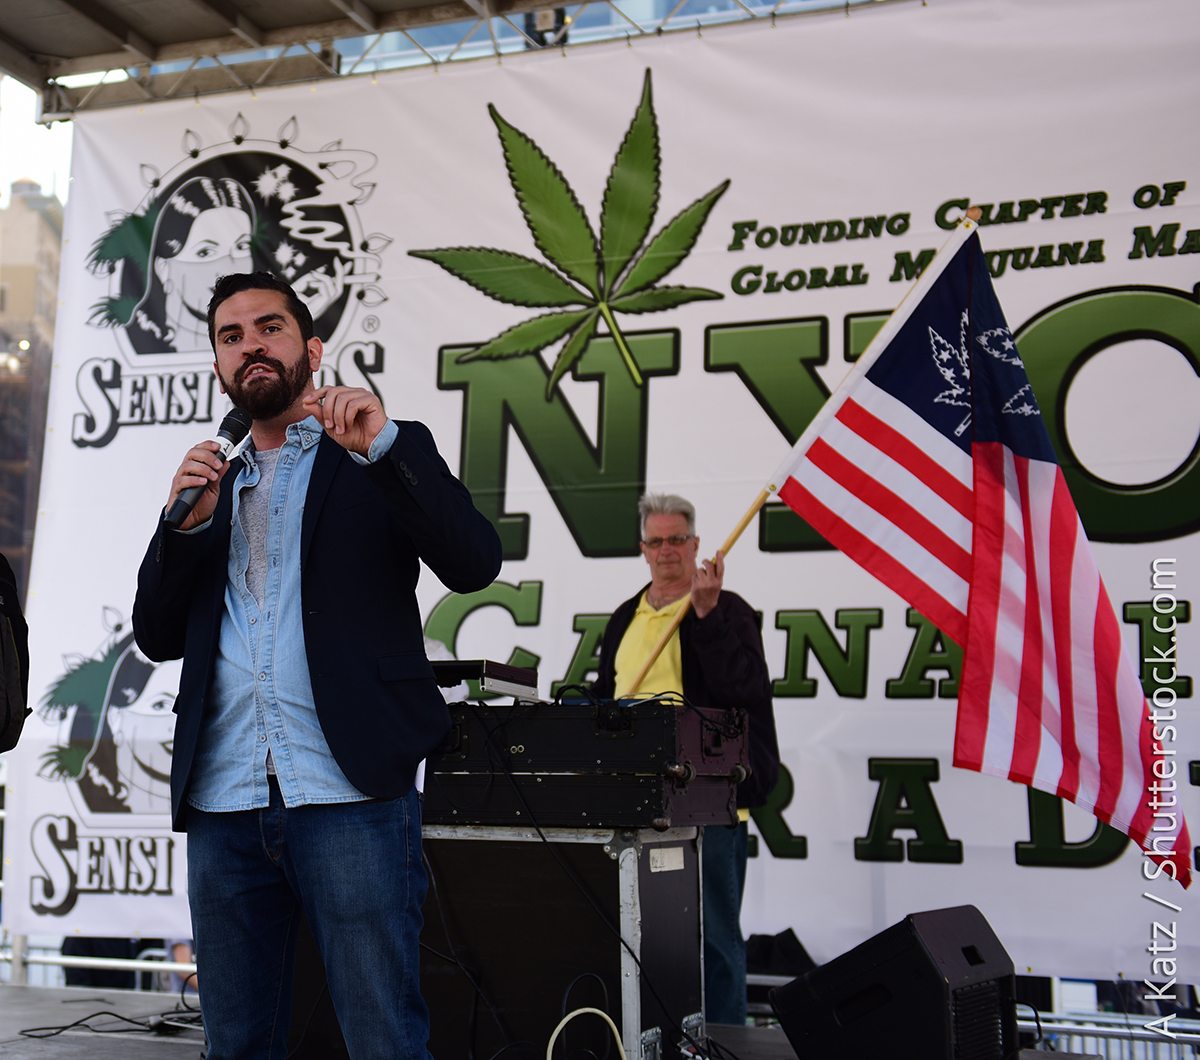 an overview of the illegality of marijuana in the untied states So far, eight states have legalized recreational cannabis  but wait, isn't  marijuana still illegal at the federal level  marijuana throughout any place in  the united states, whether a state legalizes it or not, sessions told reporters   epidemic and said the justice department would review how to proceed.